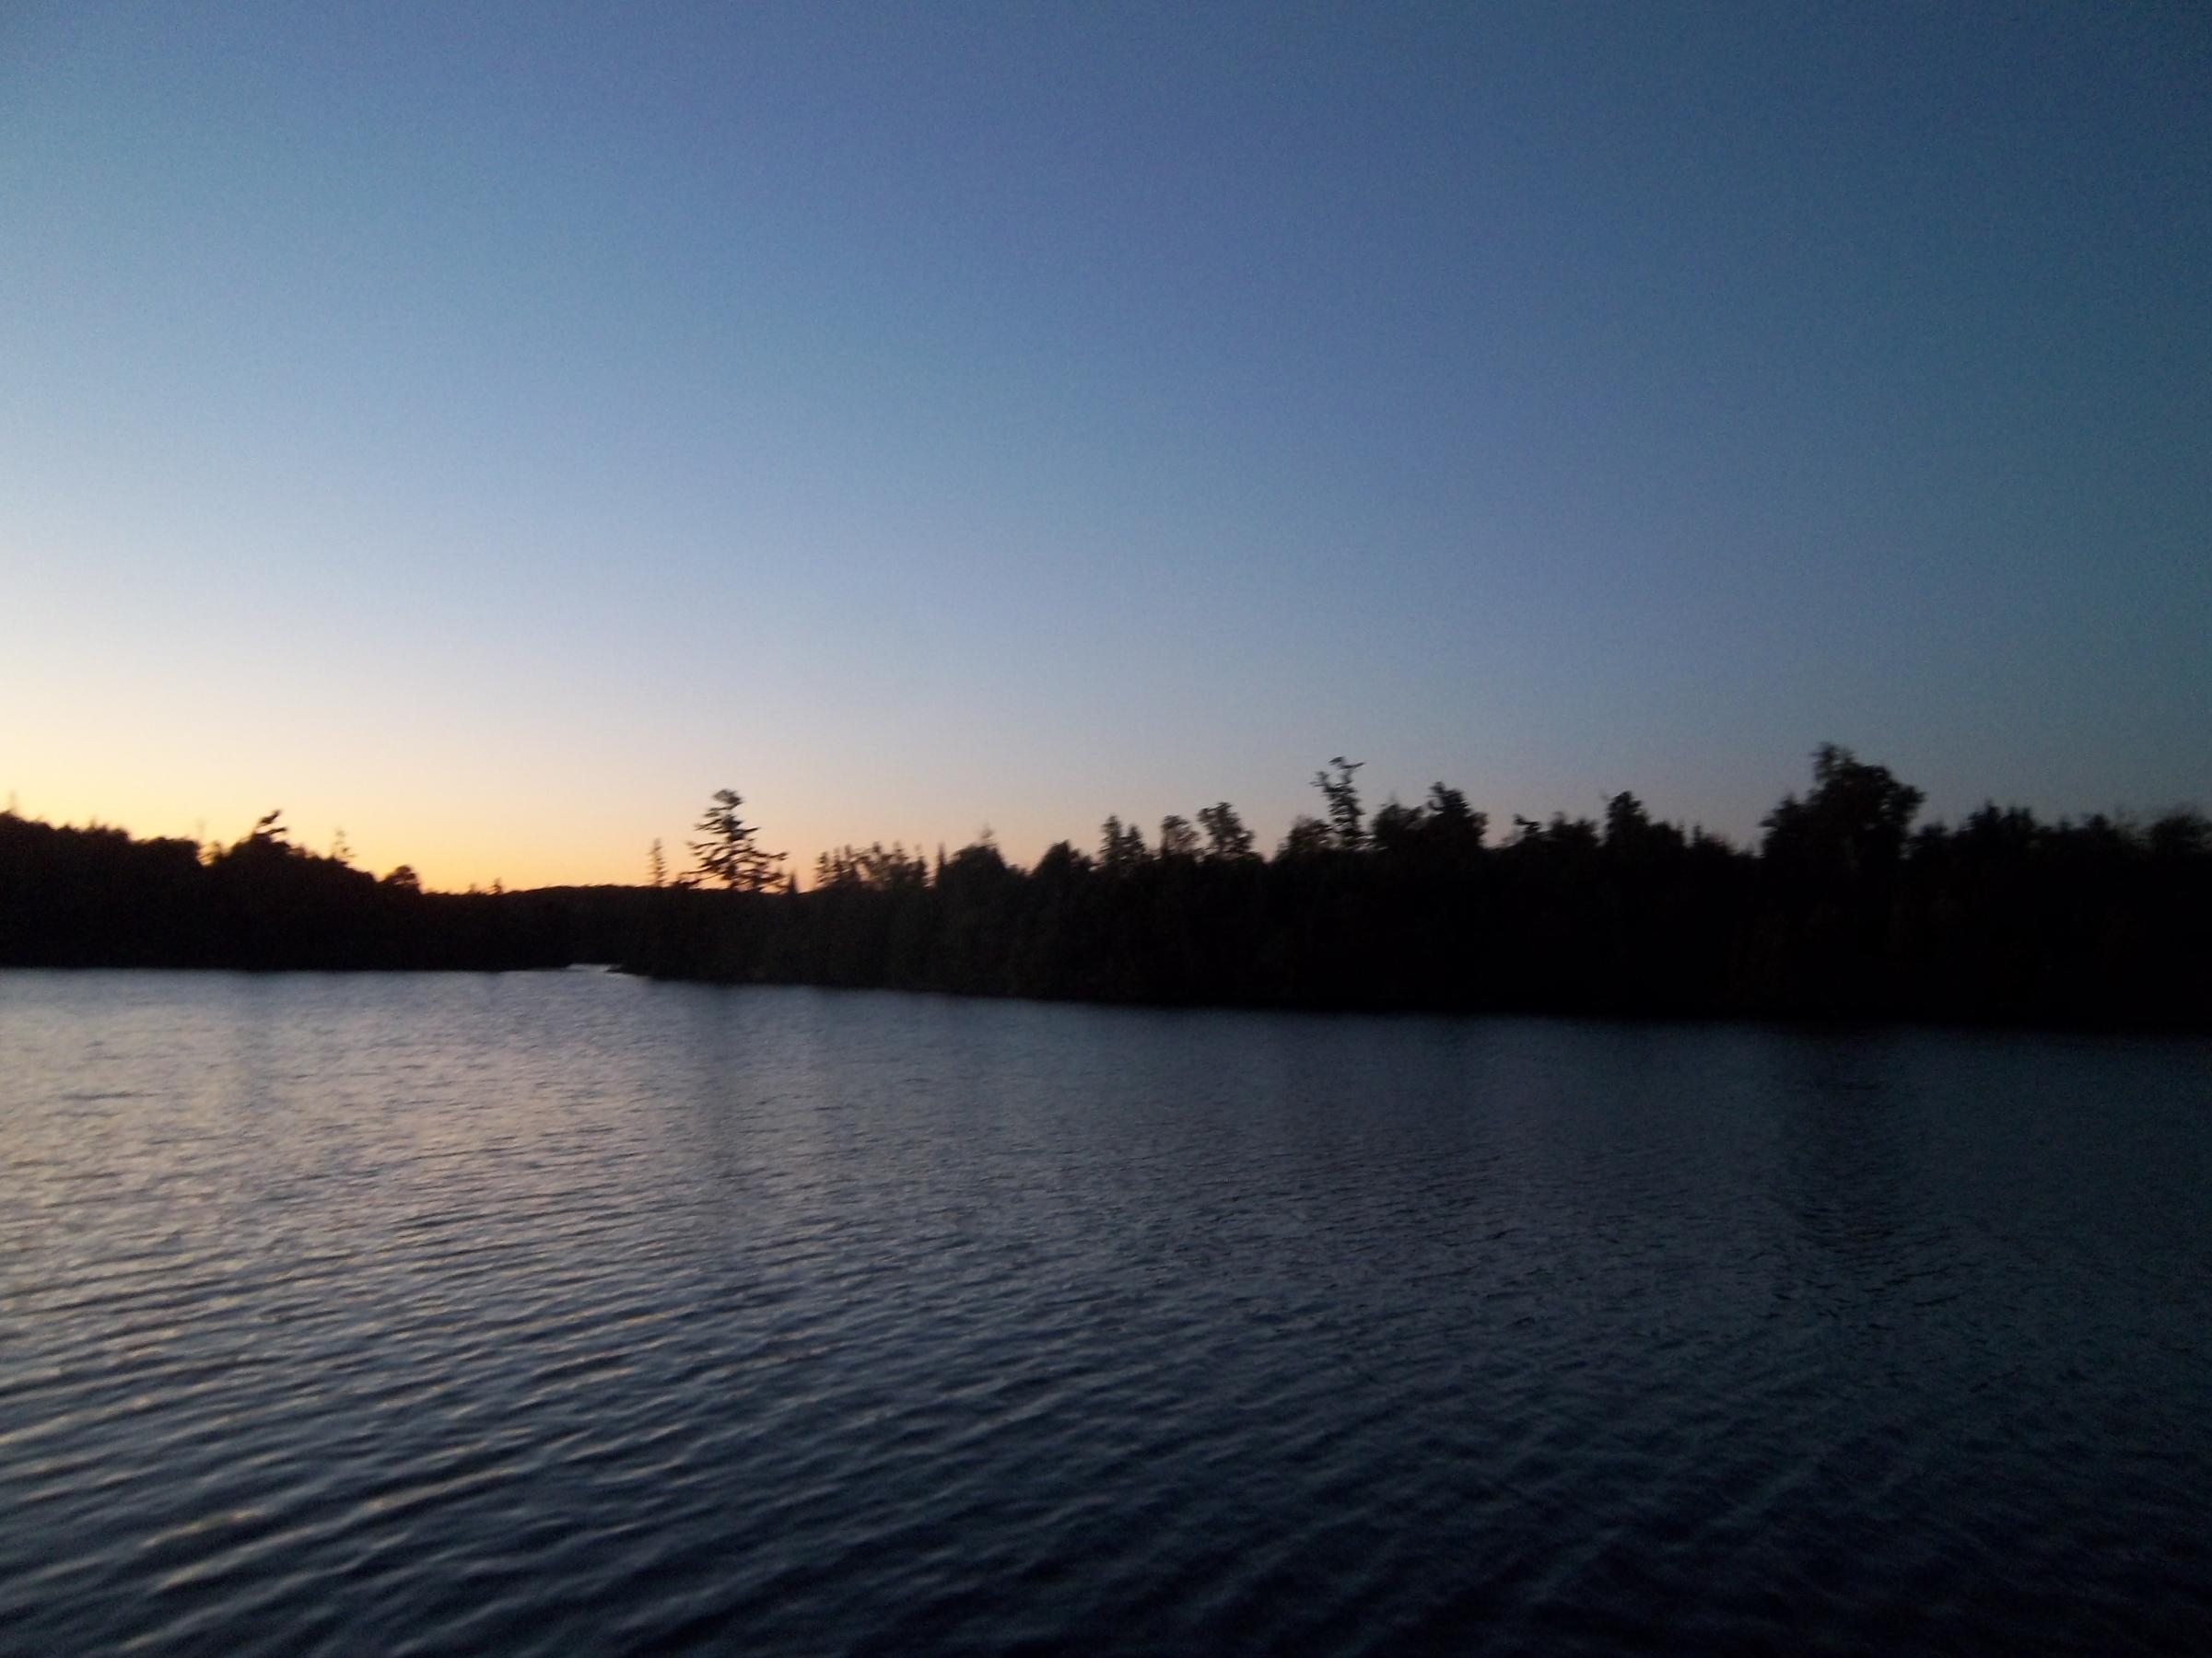 Gaskin lake at dawn